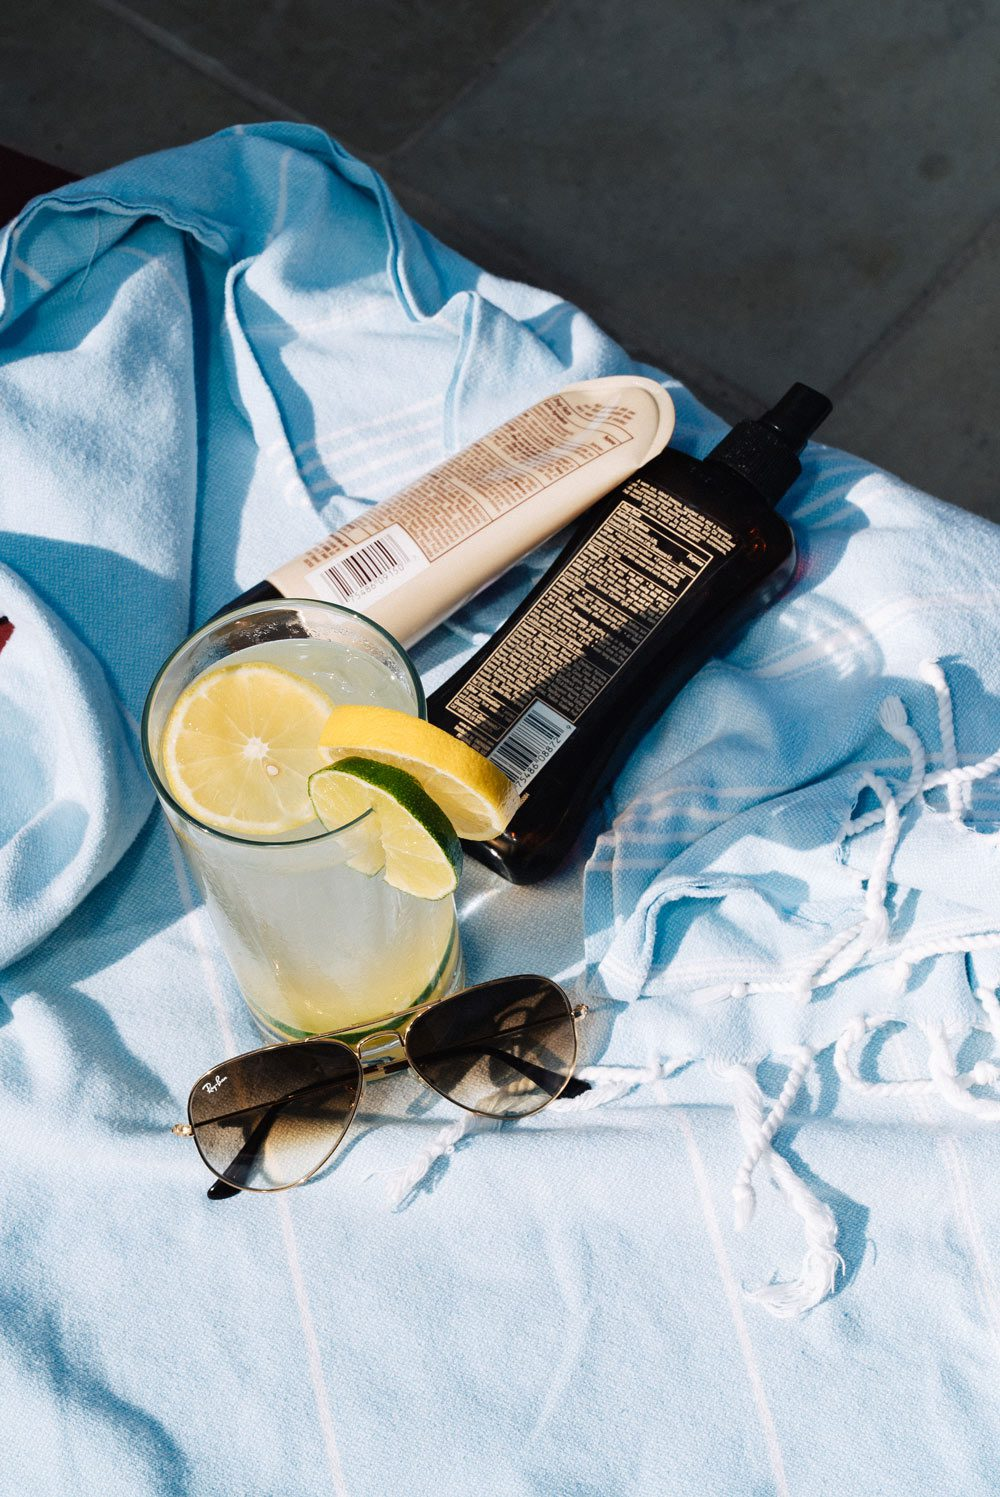 Tom-Collins-dripping-springs-recipes-6